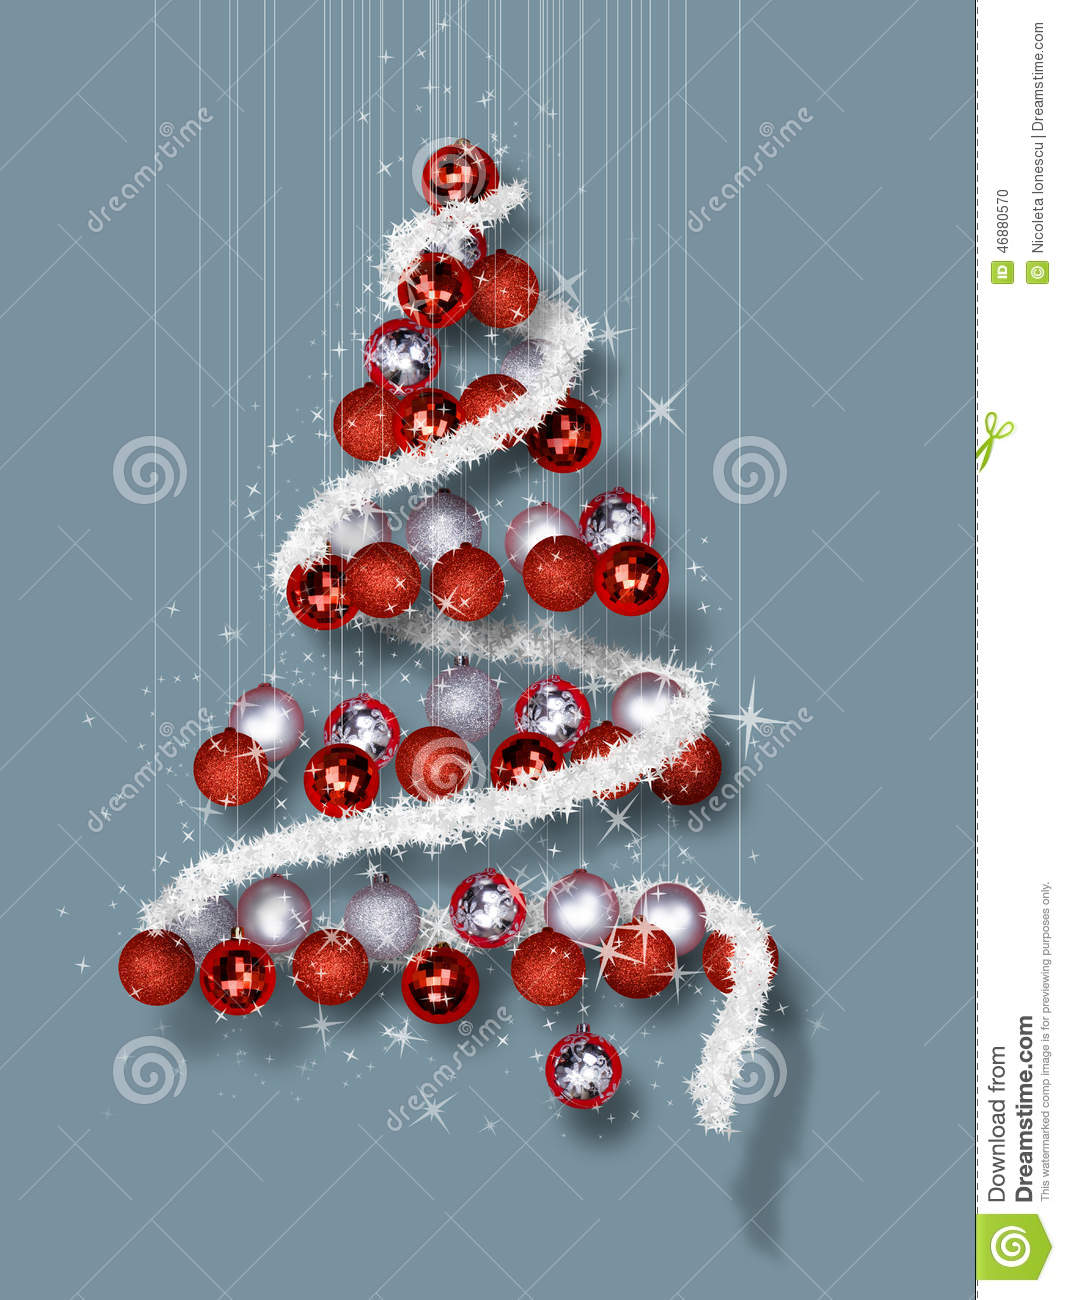 christmas tree made of ornaments on blue background - When Was Christmas Made